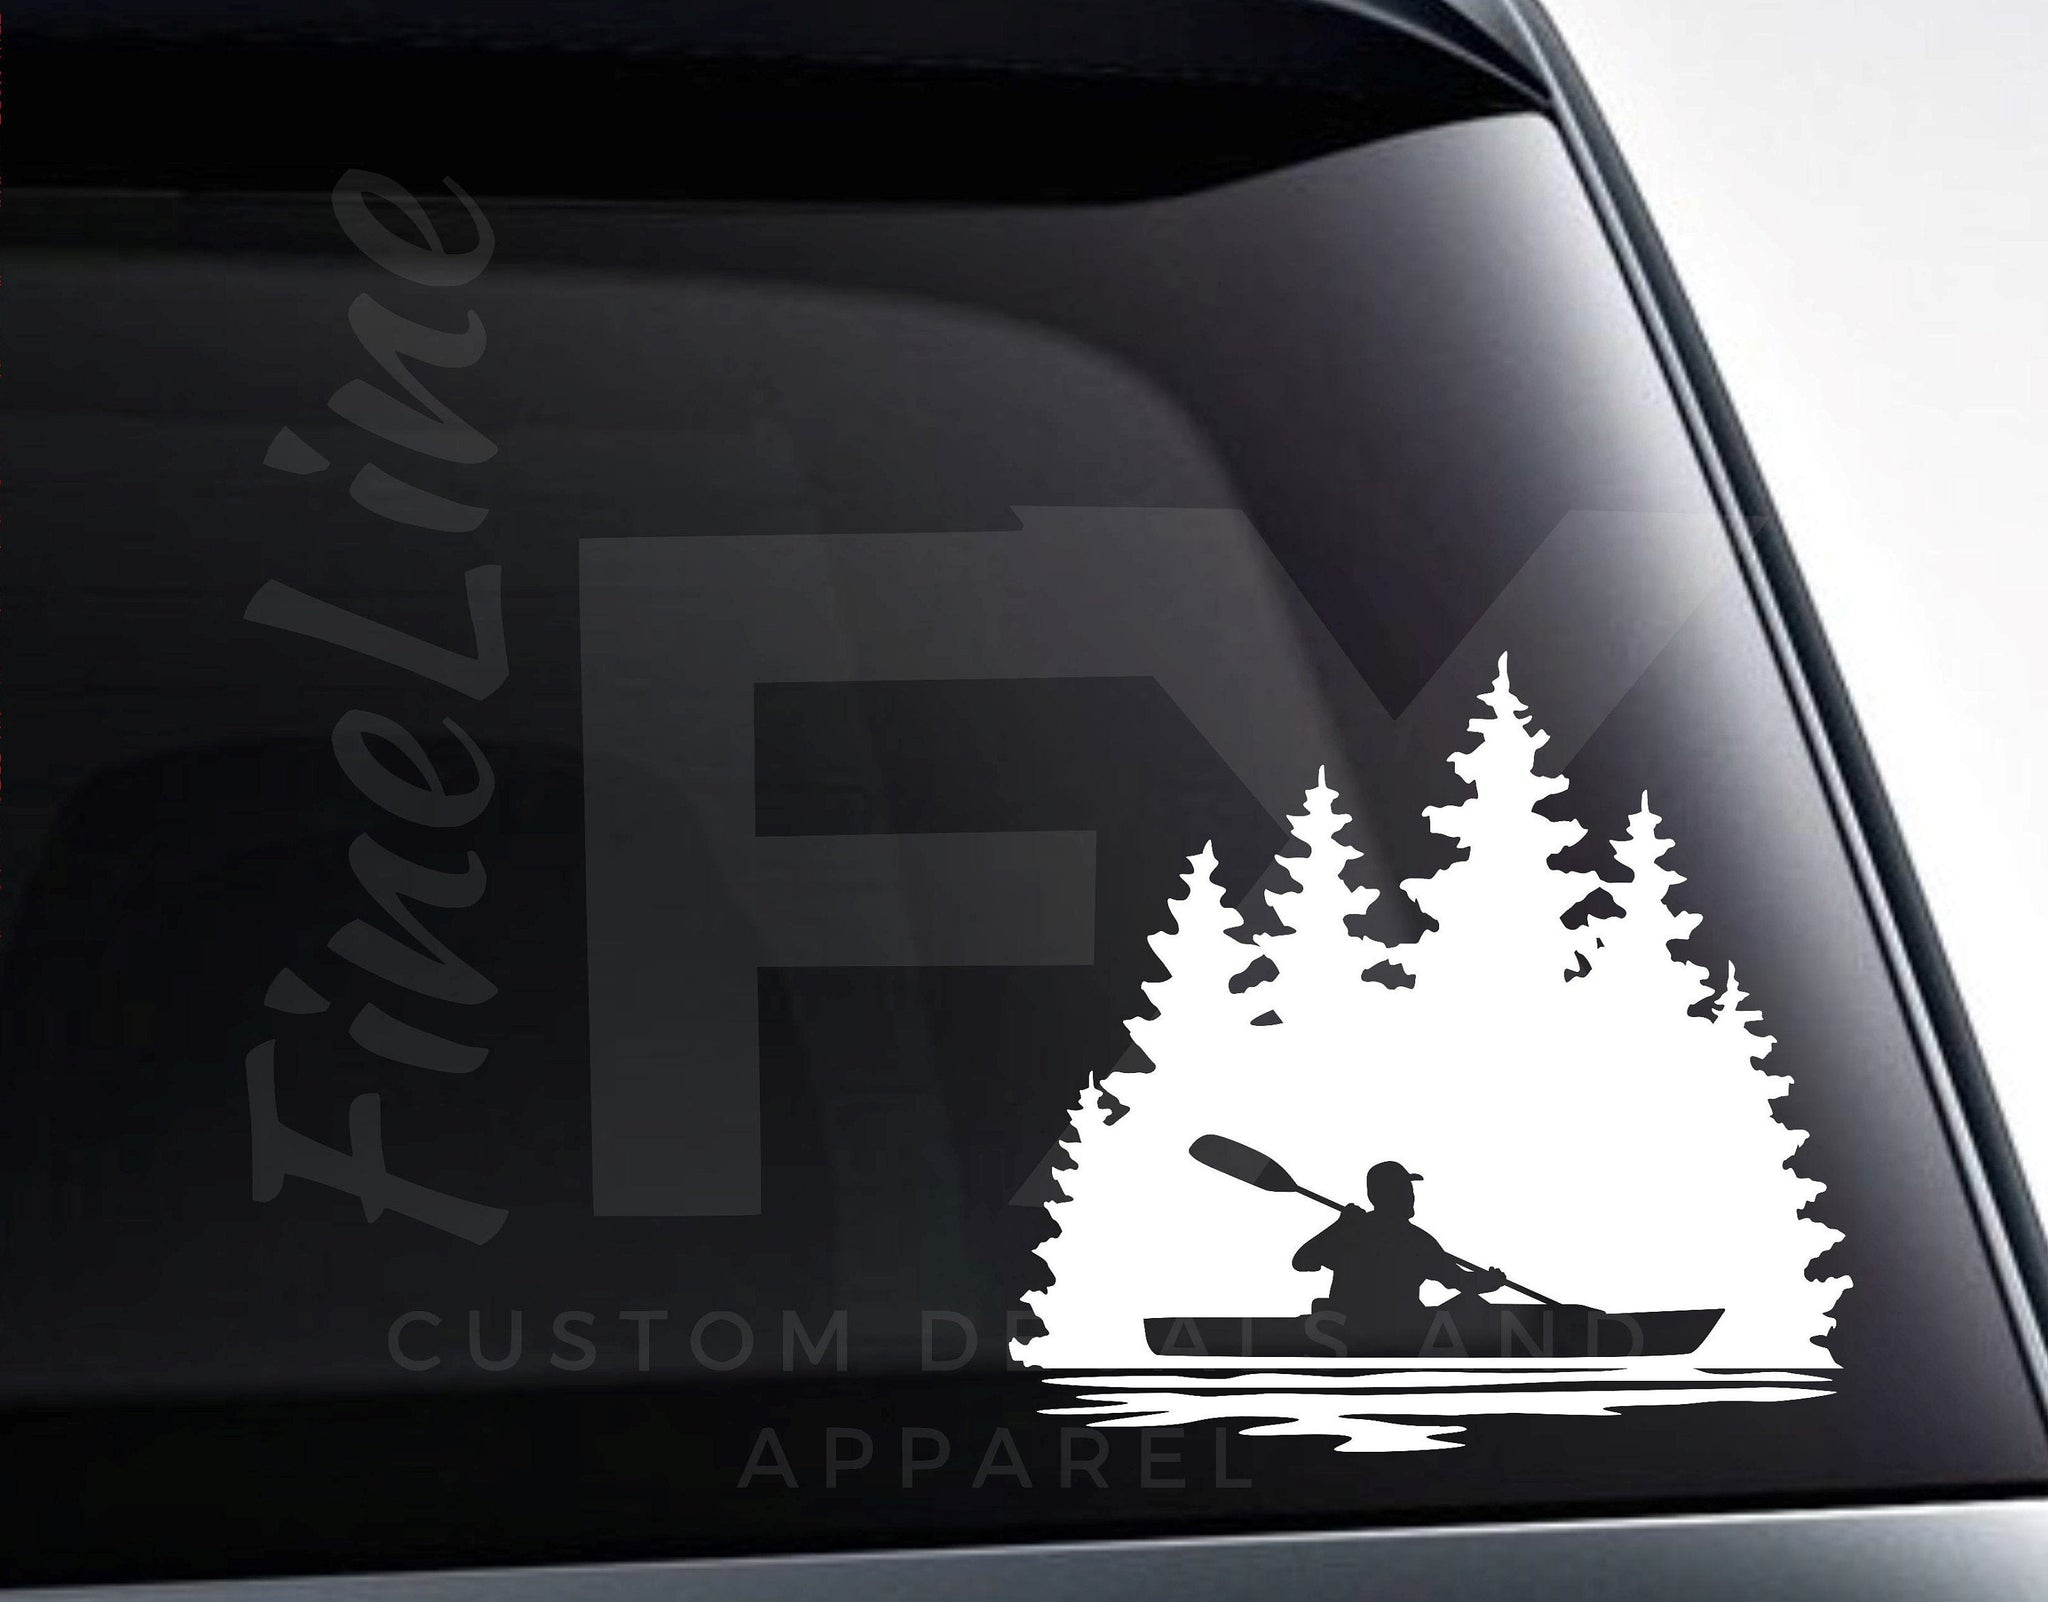 Man Kayaking Lake Nature Scenery Vinyl Decal Sticker